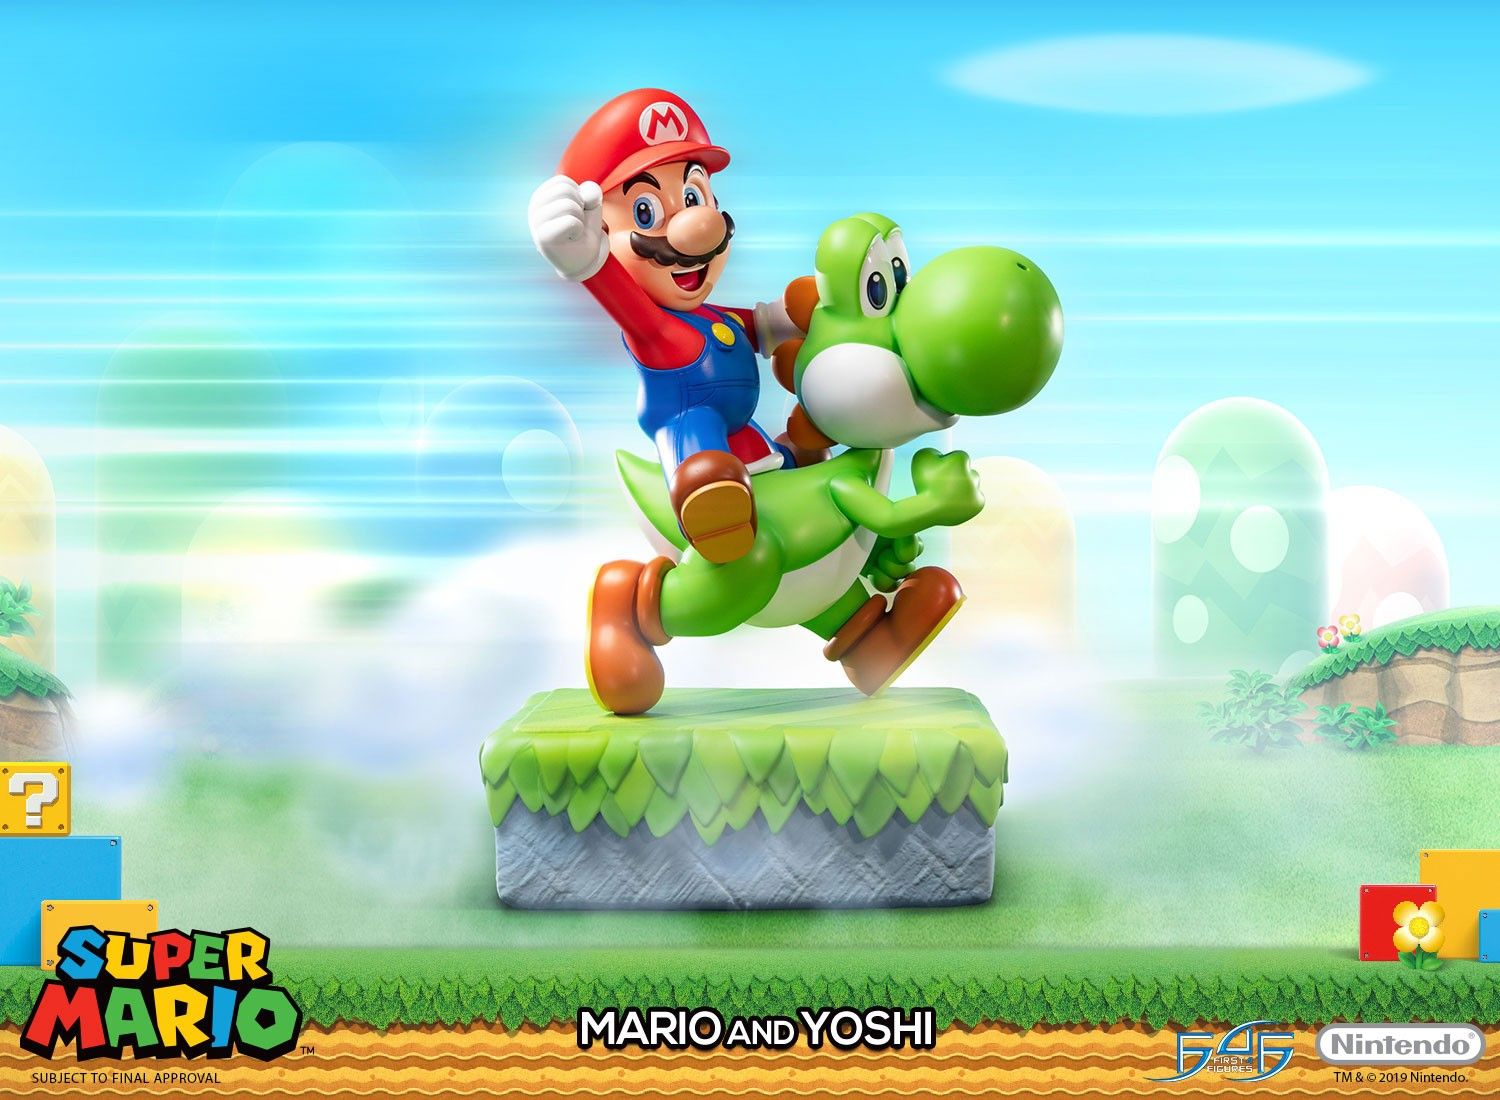 Super Mario – Mario and Yoshi Standard Edition